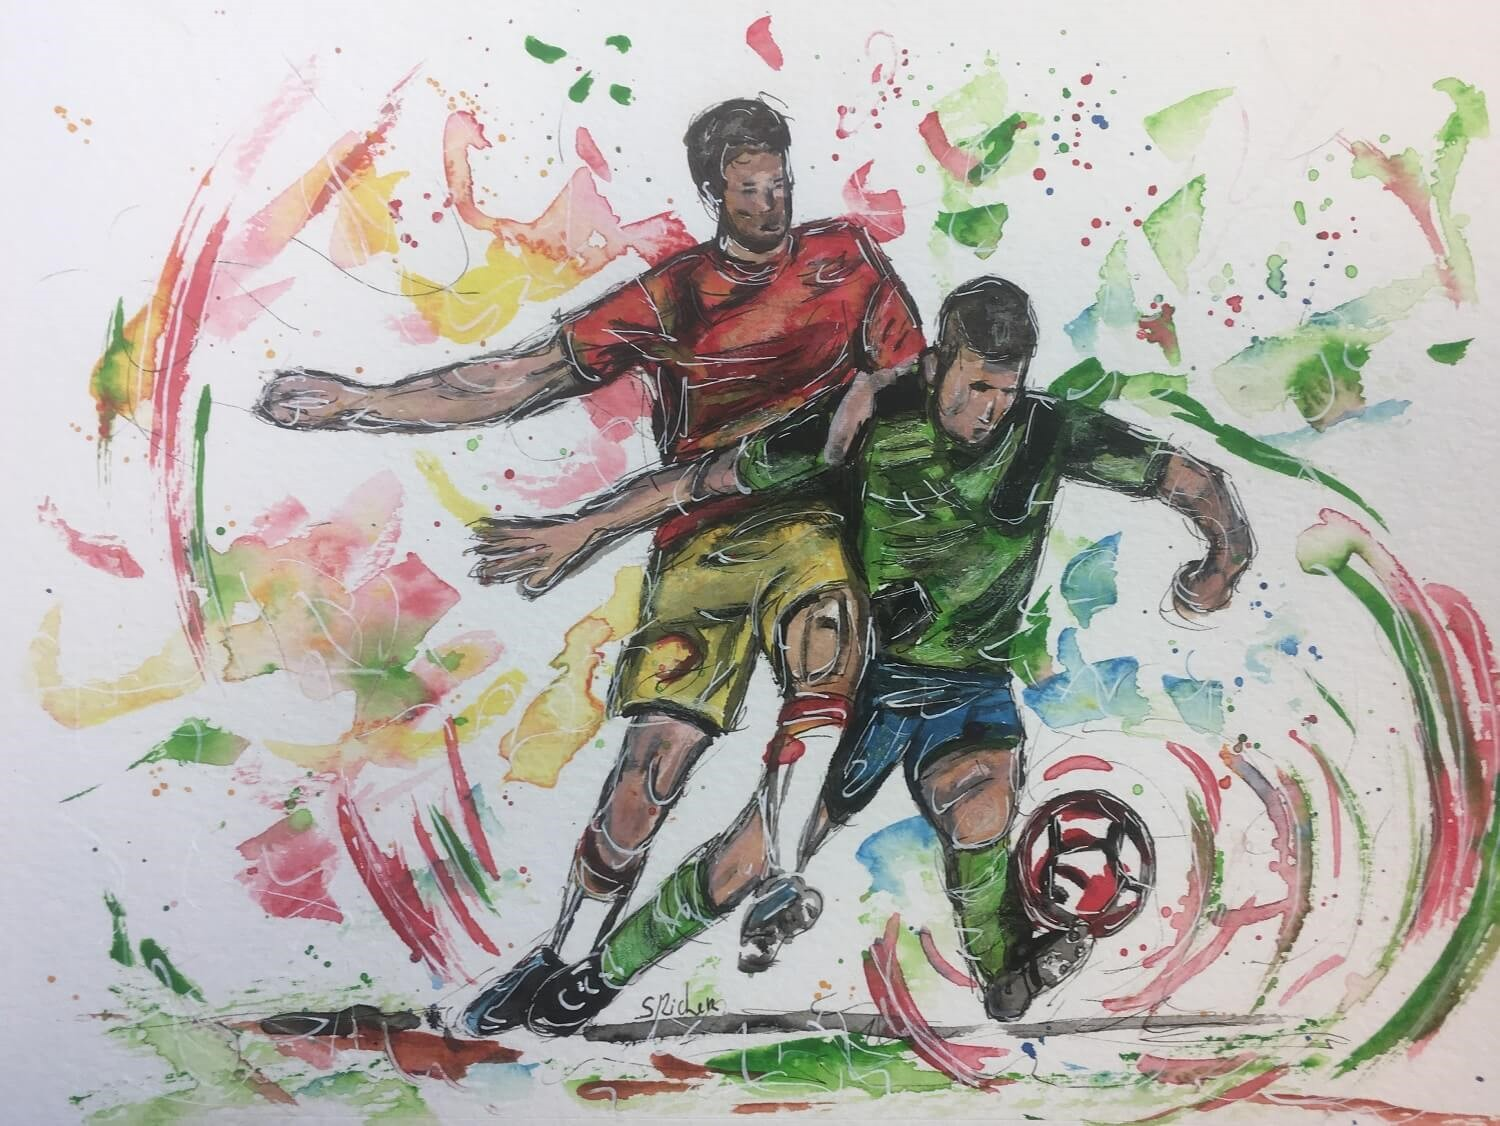 aquarelle les sports foot severine richer peintre normand